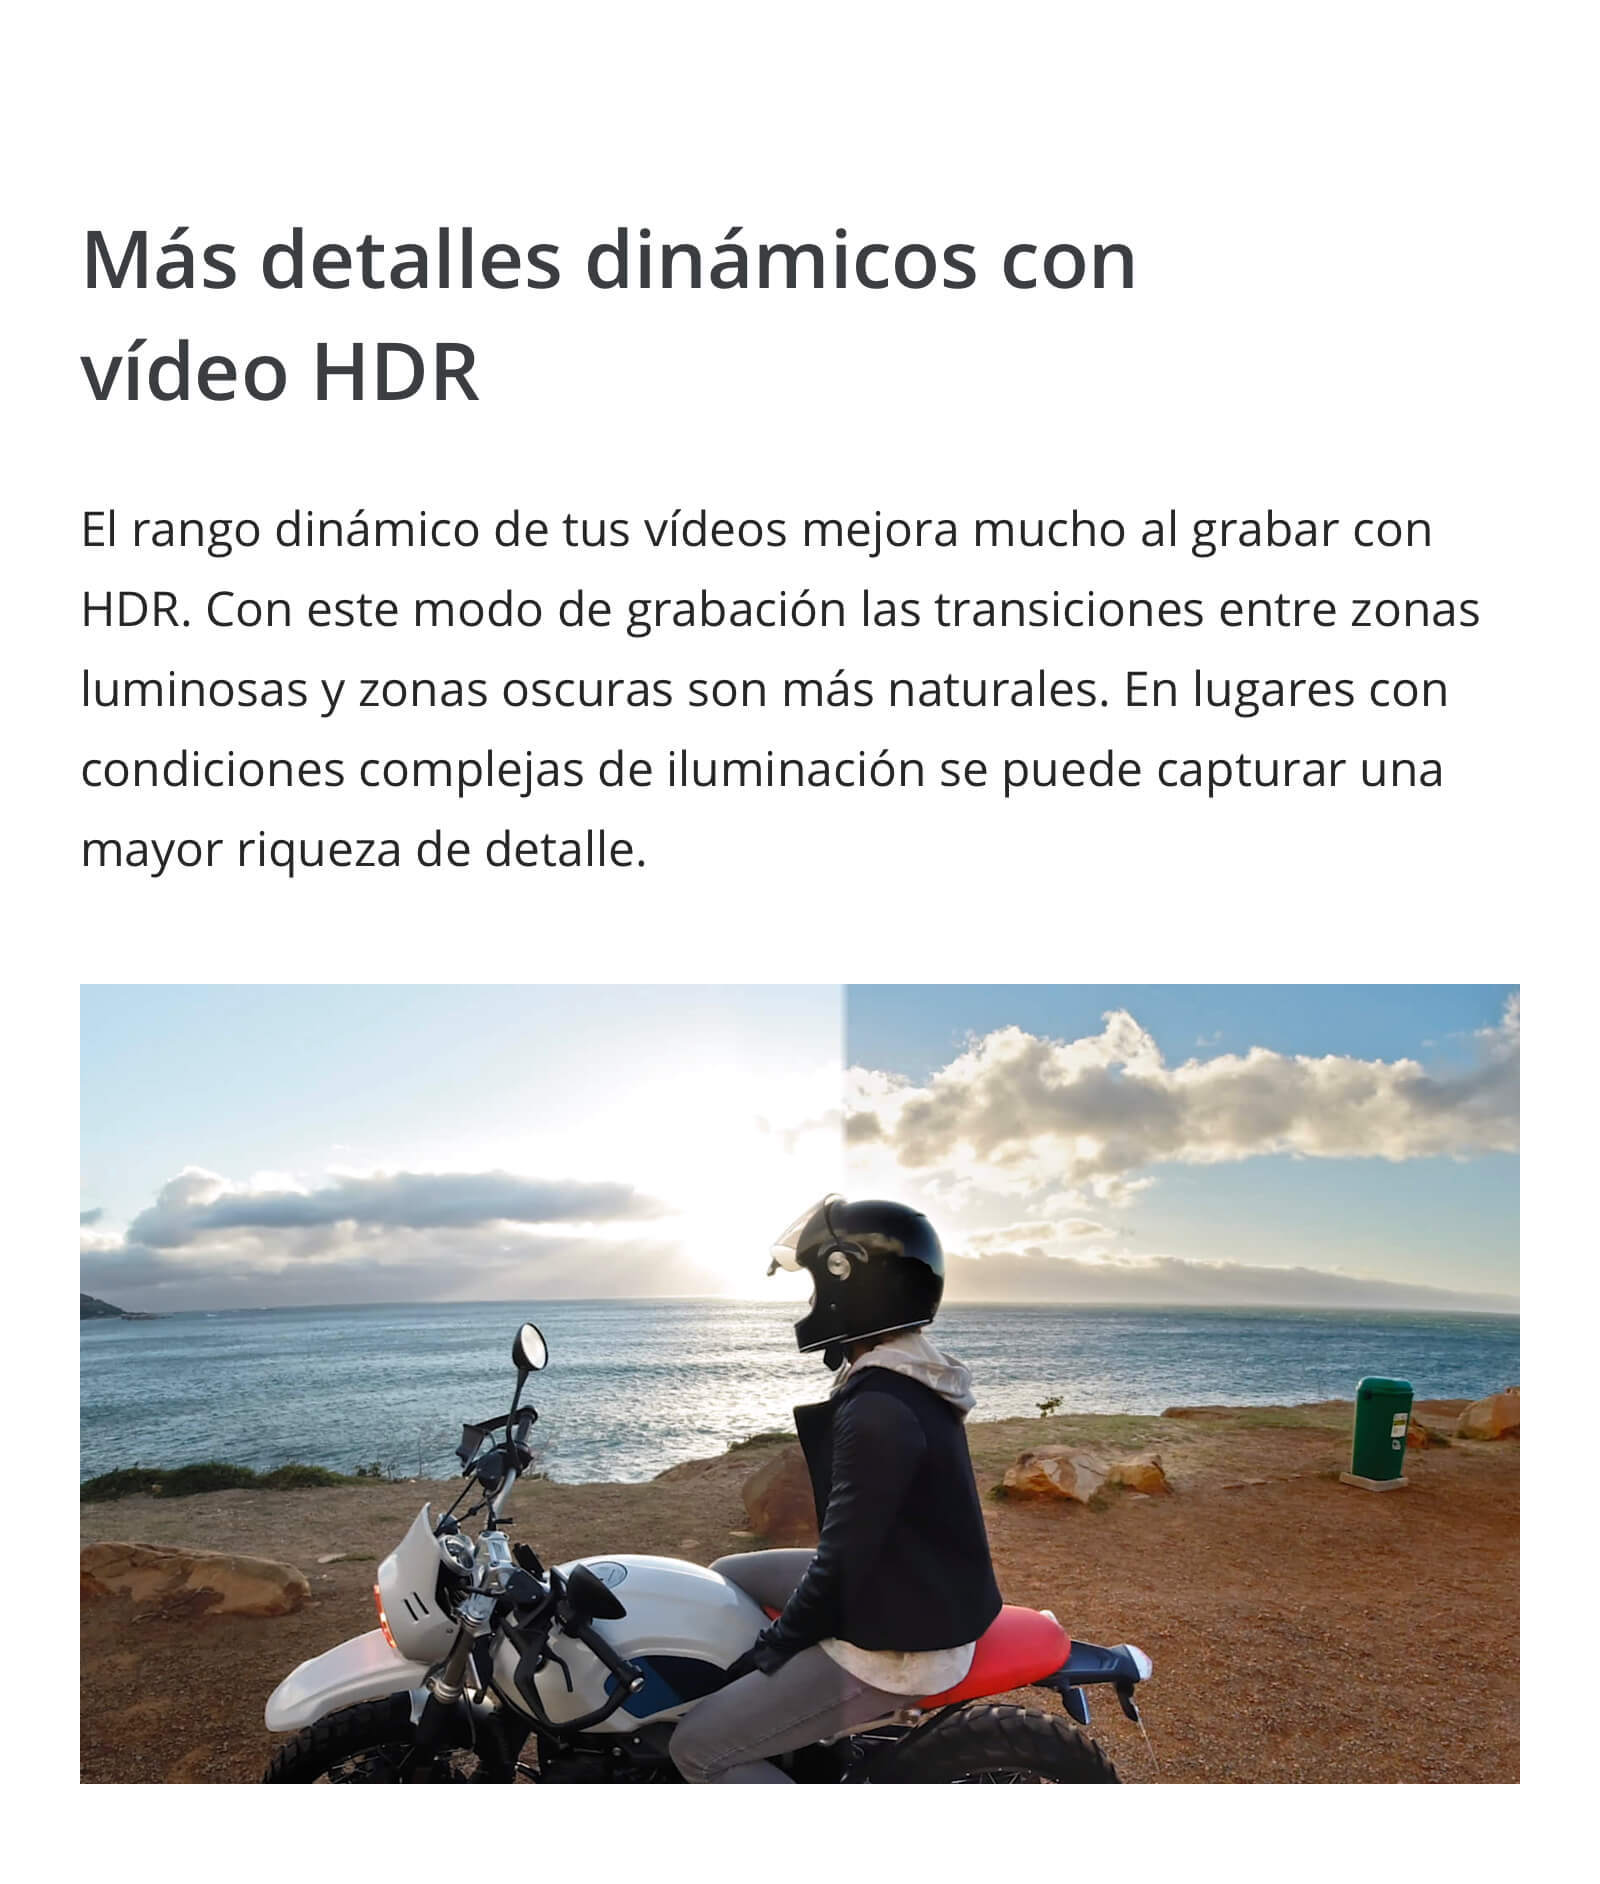 DJI_osmo_action_stockrc4